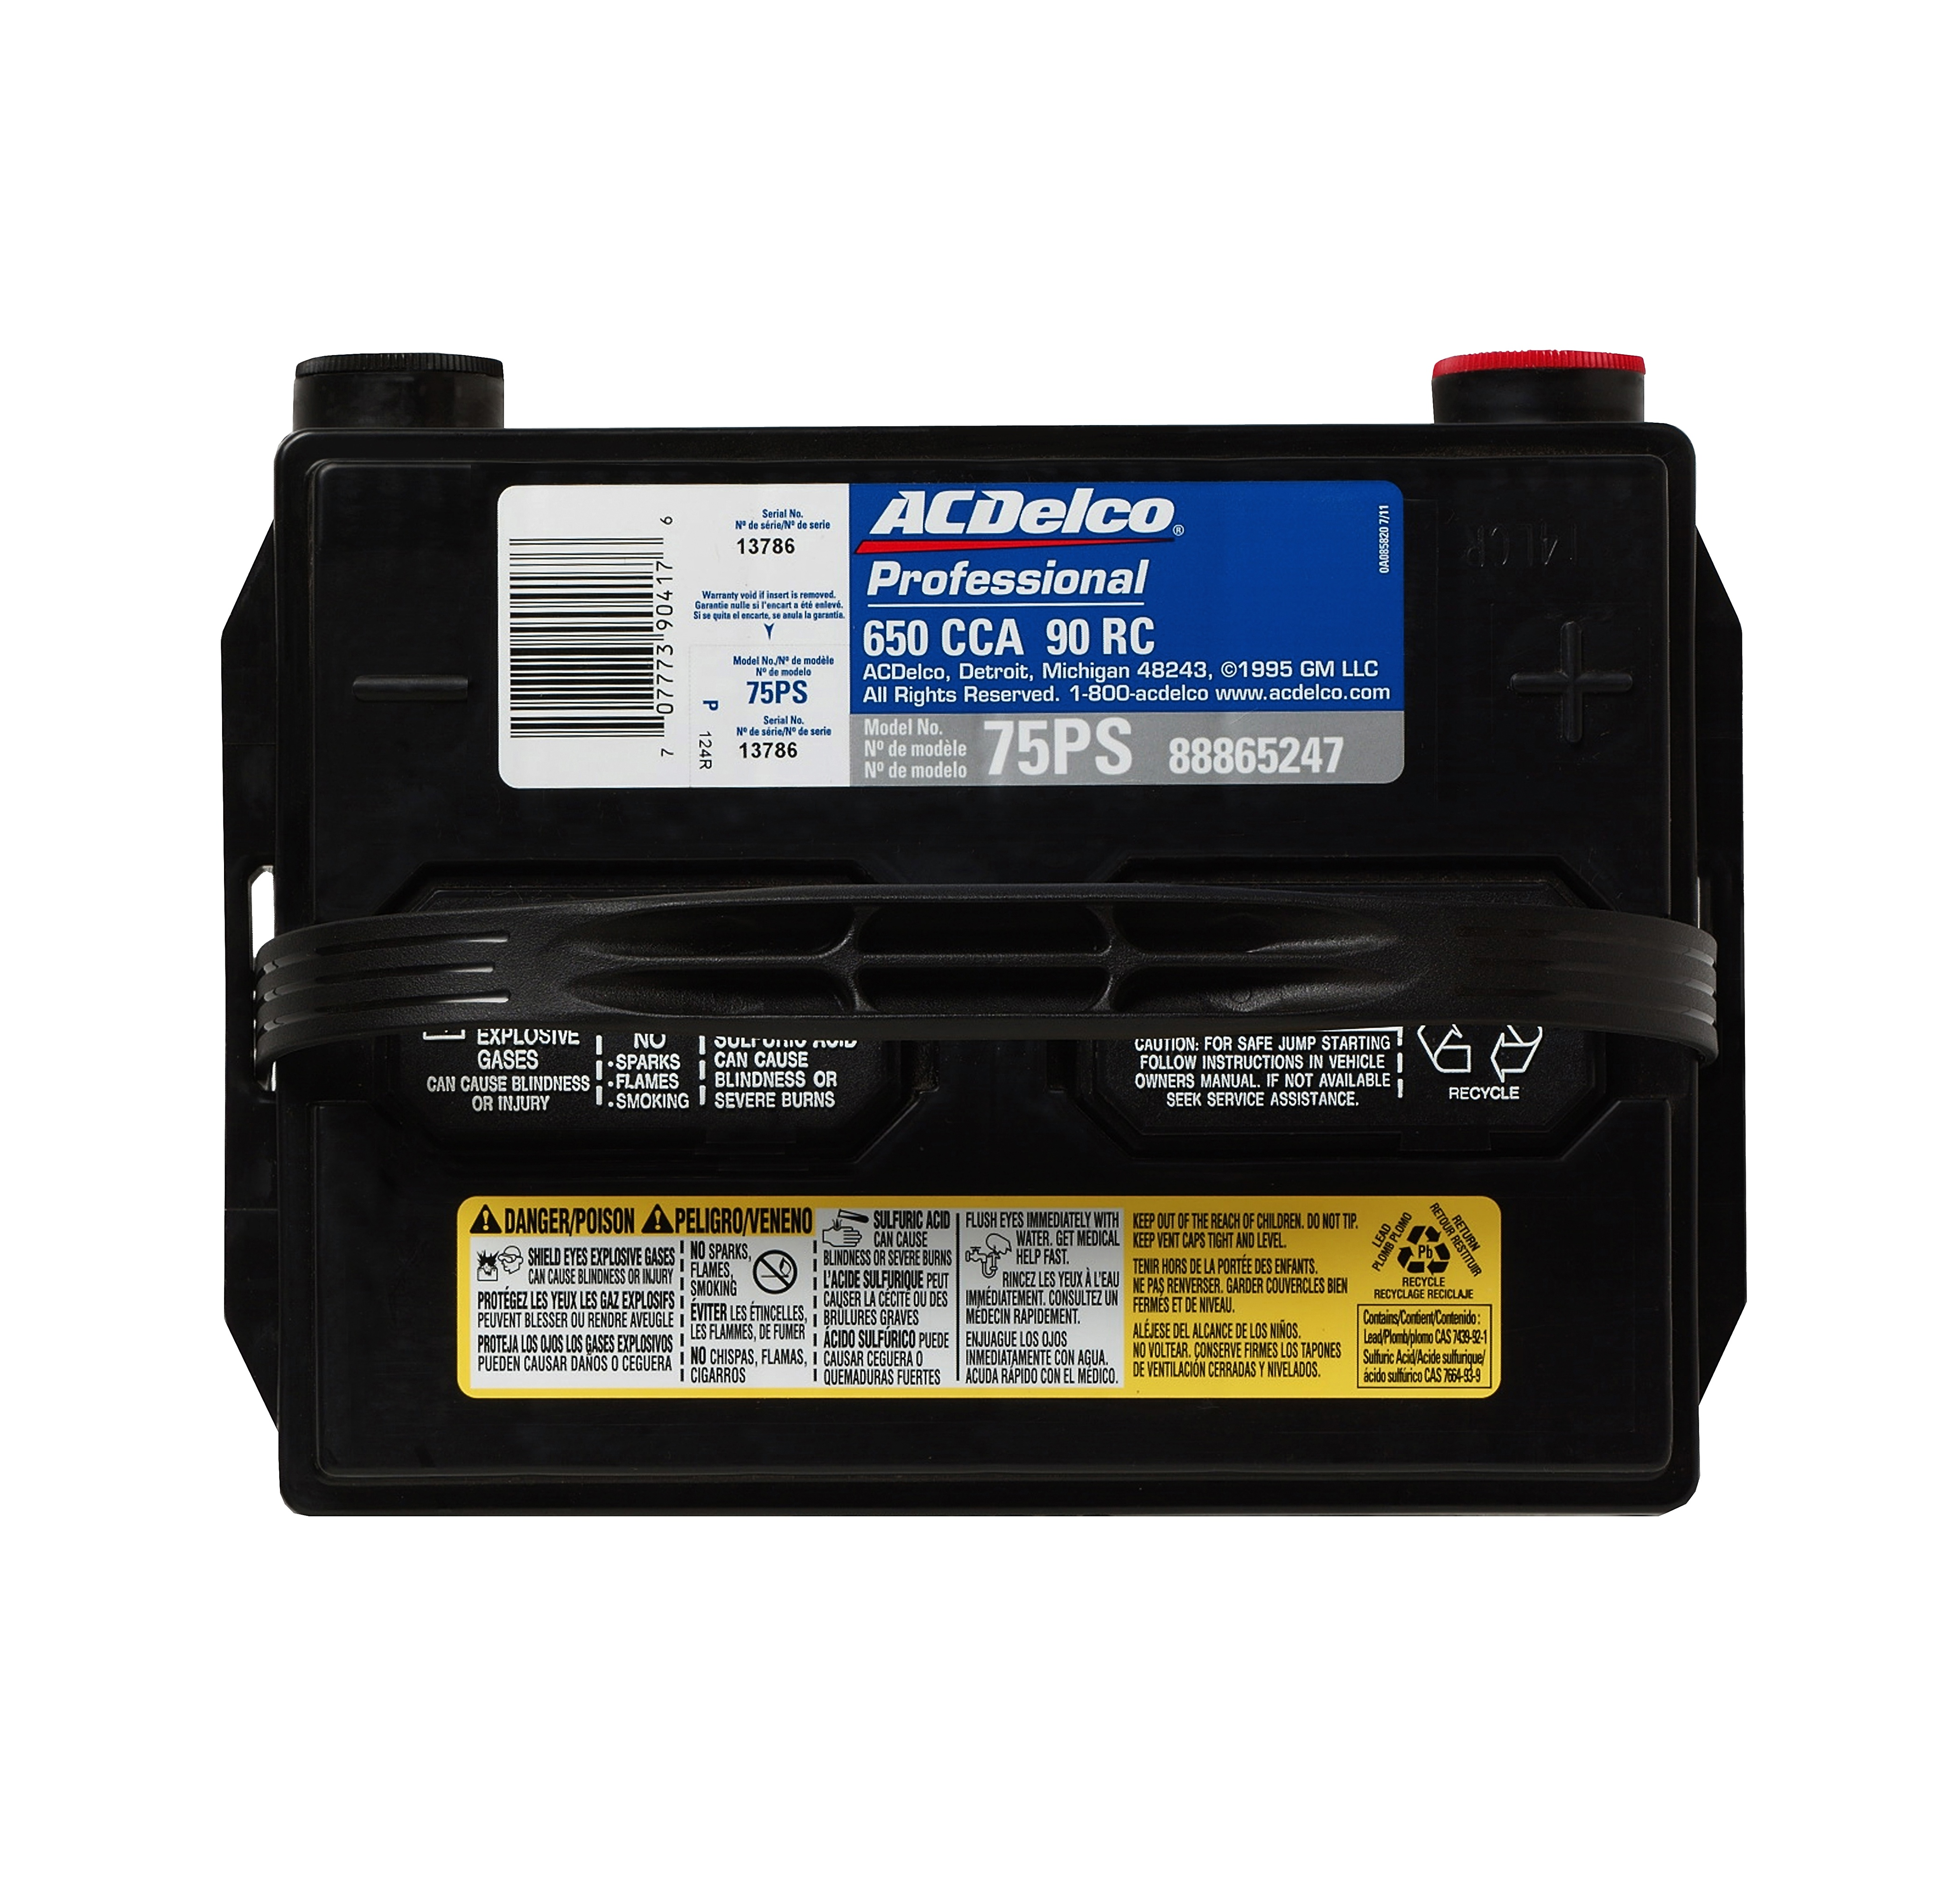 Acdelco Professional 650 Cca 30 Mo Full Wty 75ps